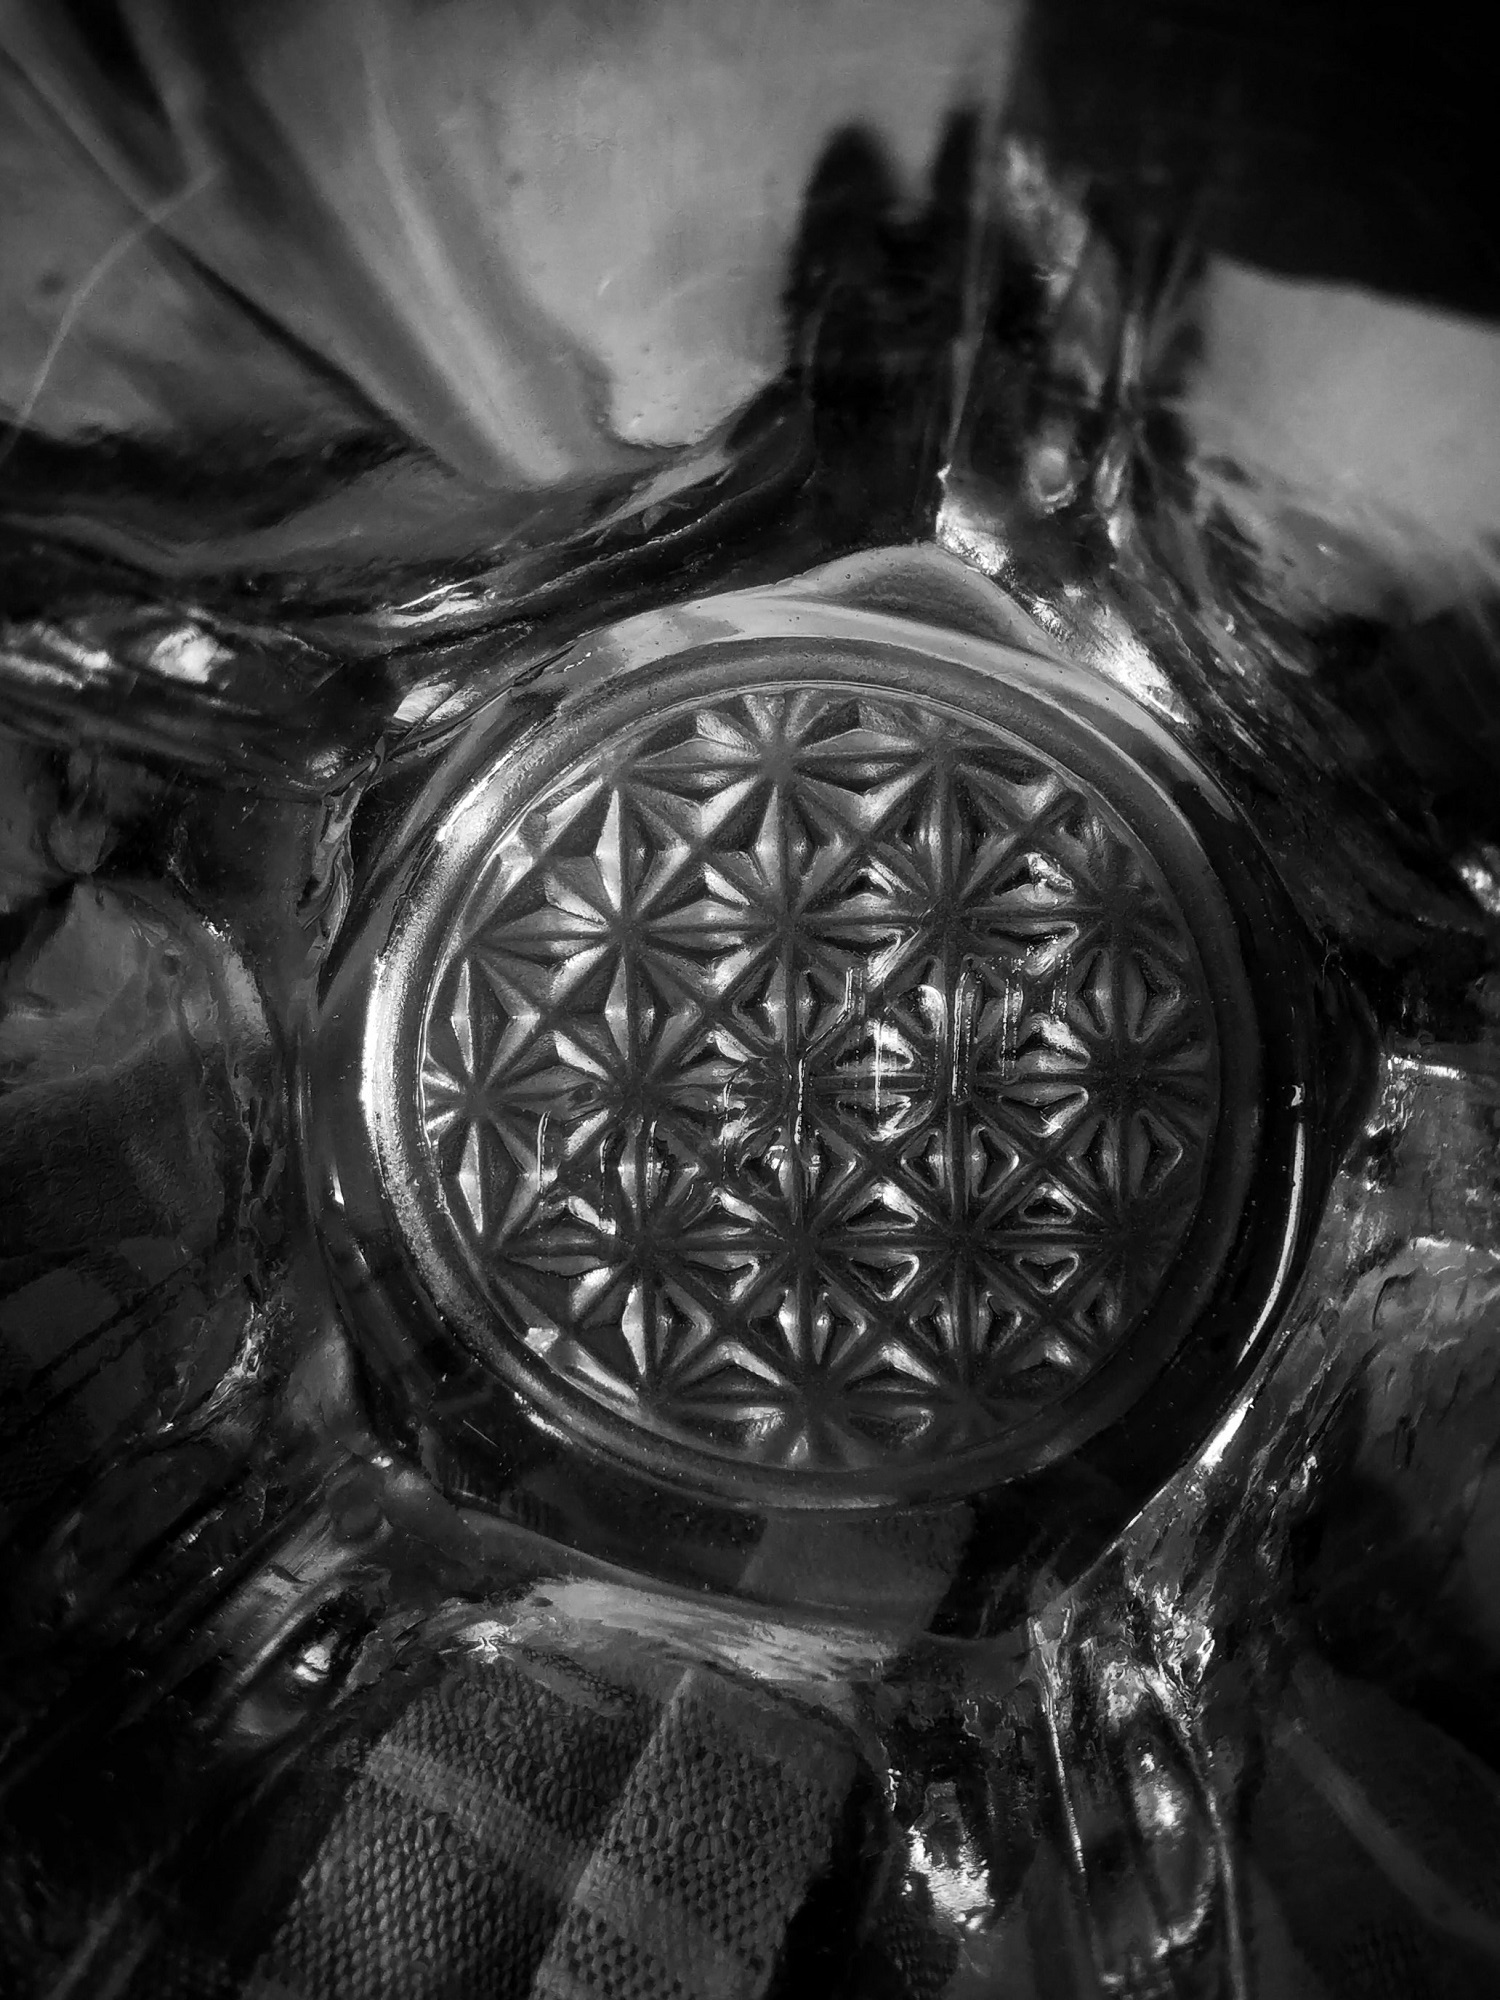 When you look at a piece of delicately spun glass you think of two things: how beautiful it is and how easily it can be broken.